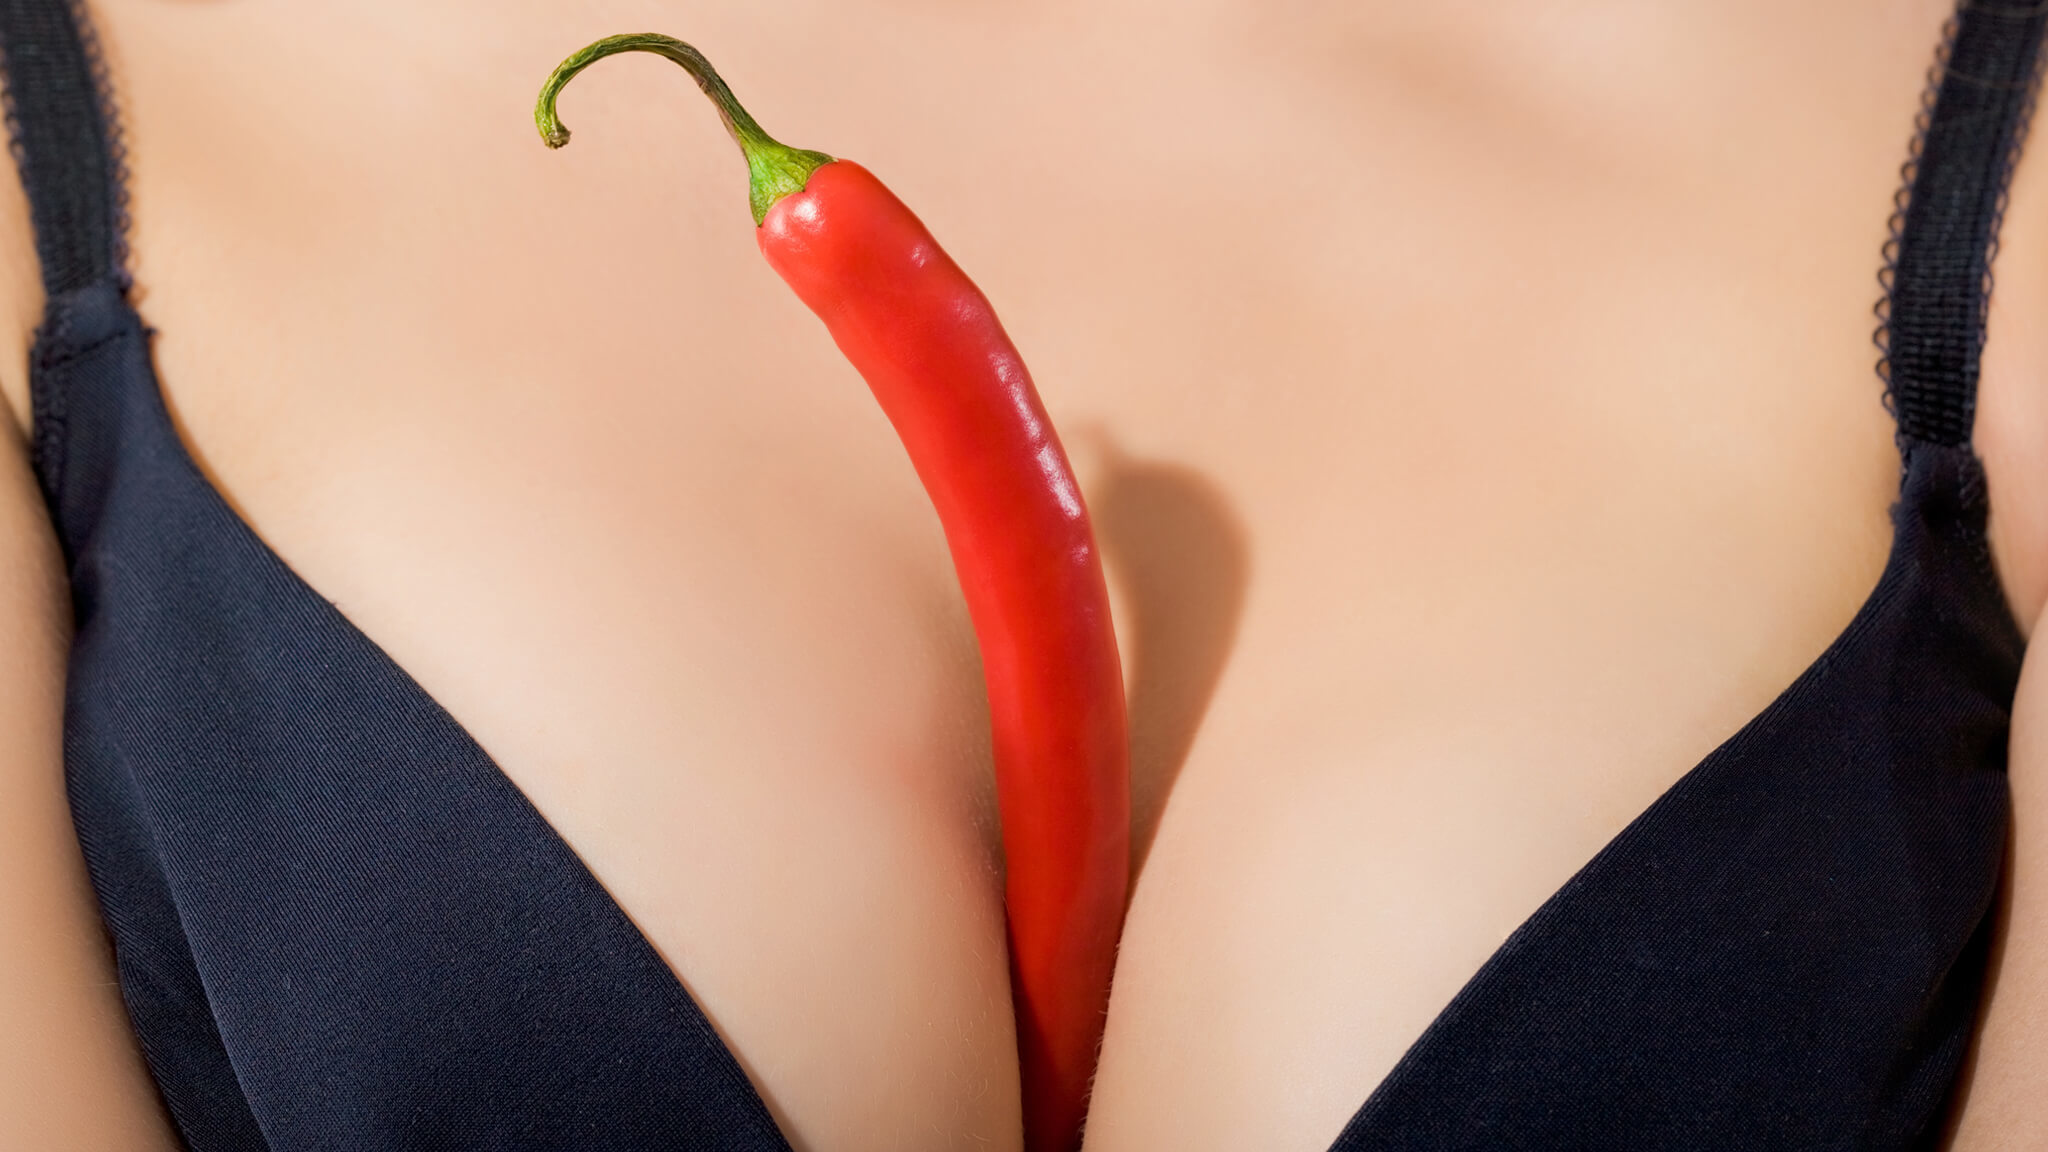 Image Of Woman's Breast Cleavage With A Pepper Between Signifying Breast Sex